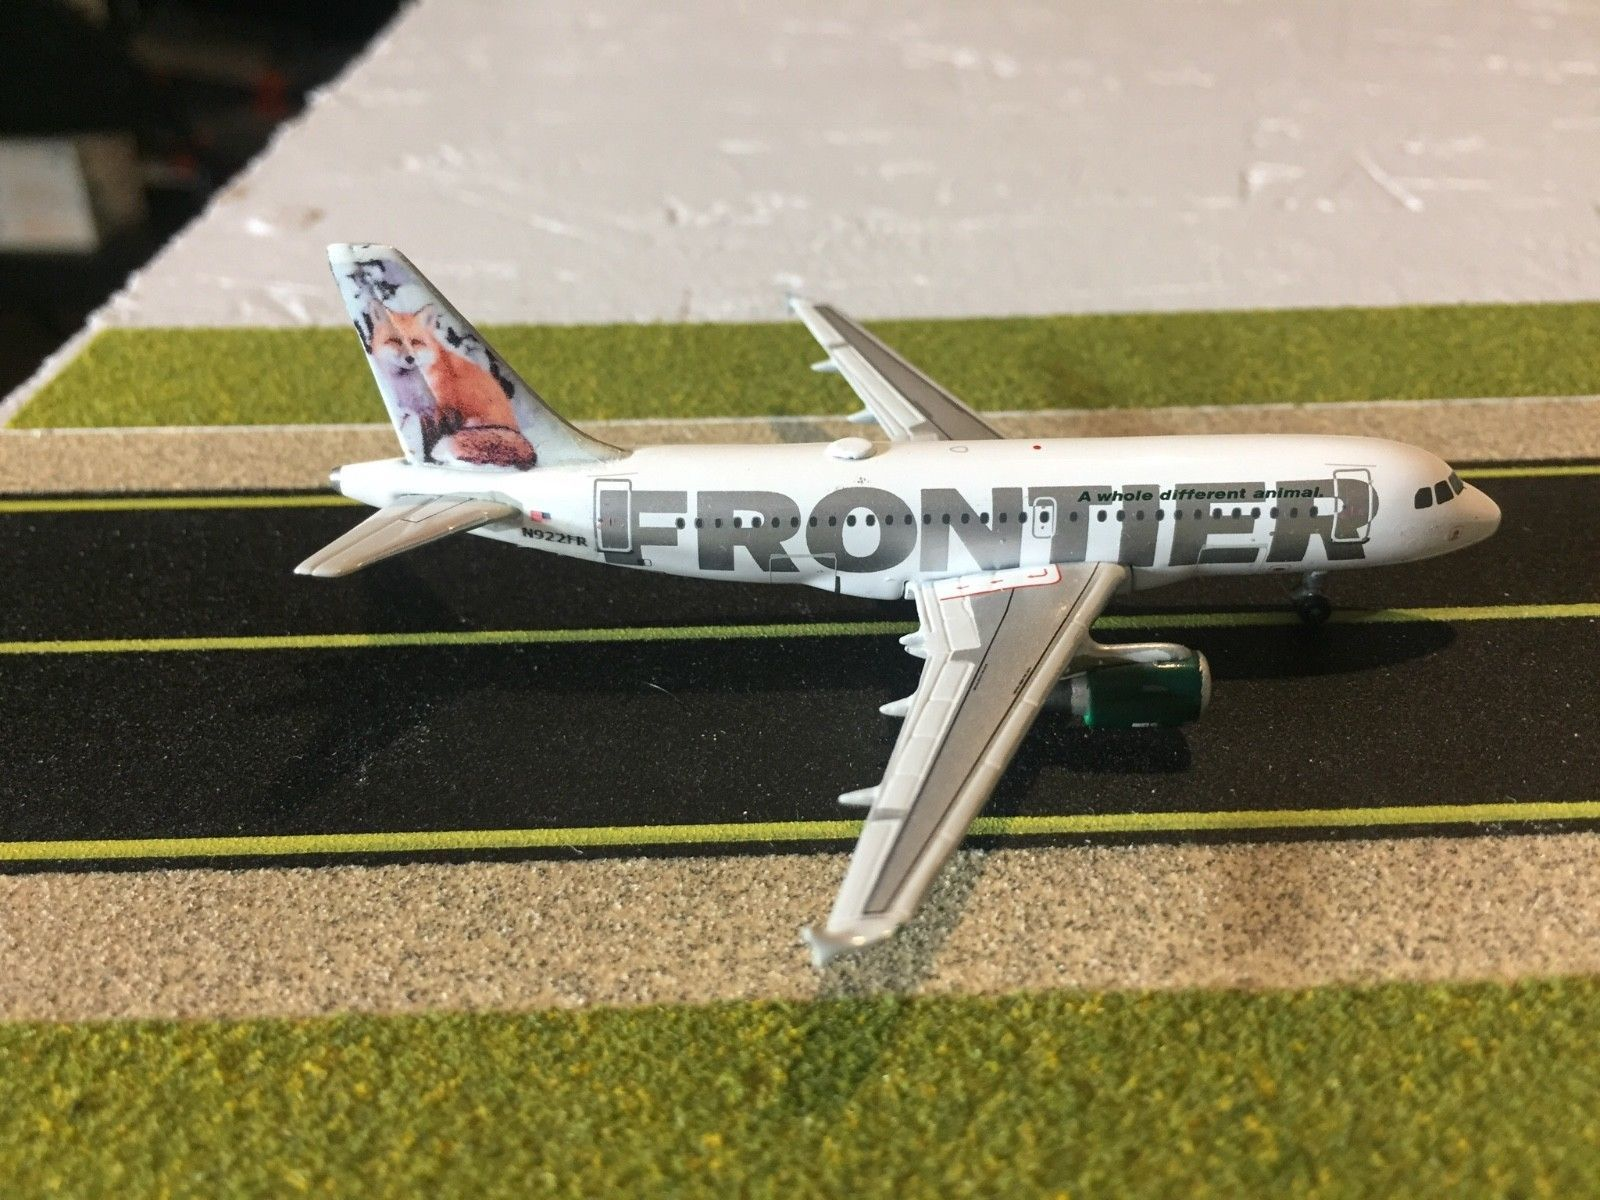 Contemporary Manufacture 19029 1 400 Geminijets 1 400 Frontier A319 Red Fox Custom Model Buy It Now Only 40 On Ebay Conte Diecast Toy Custom Aircraft